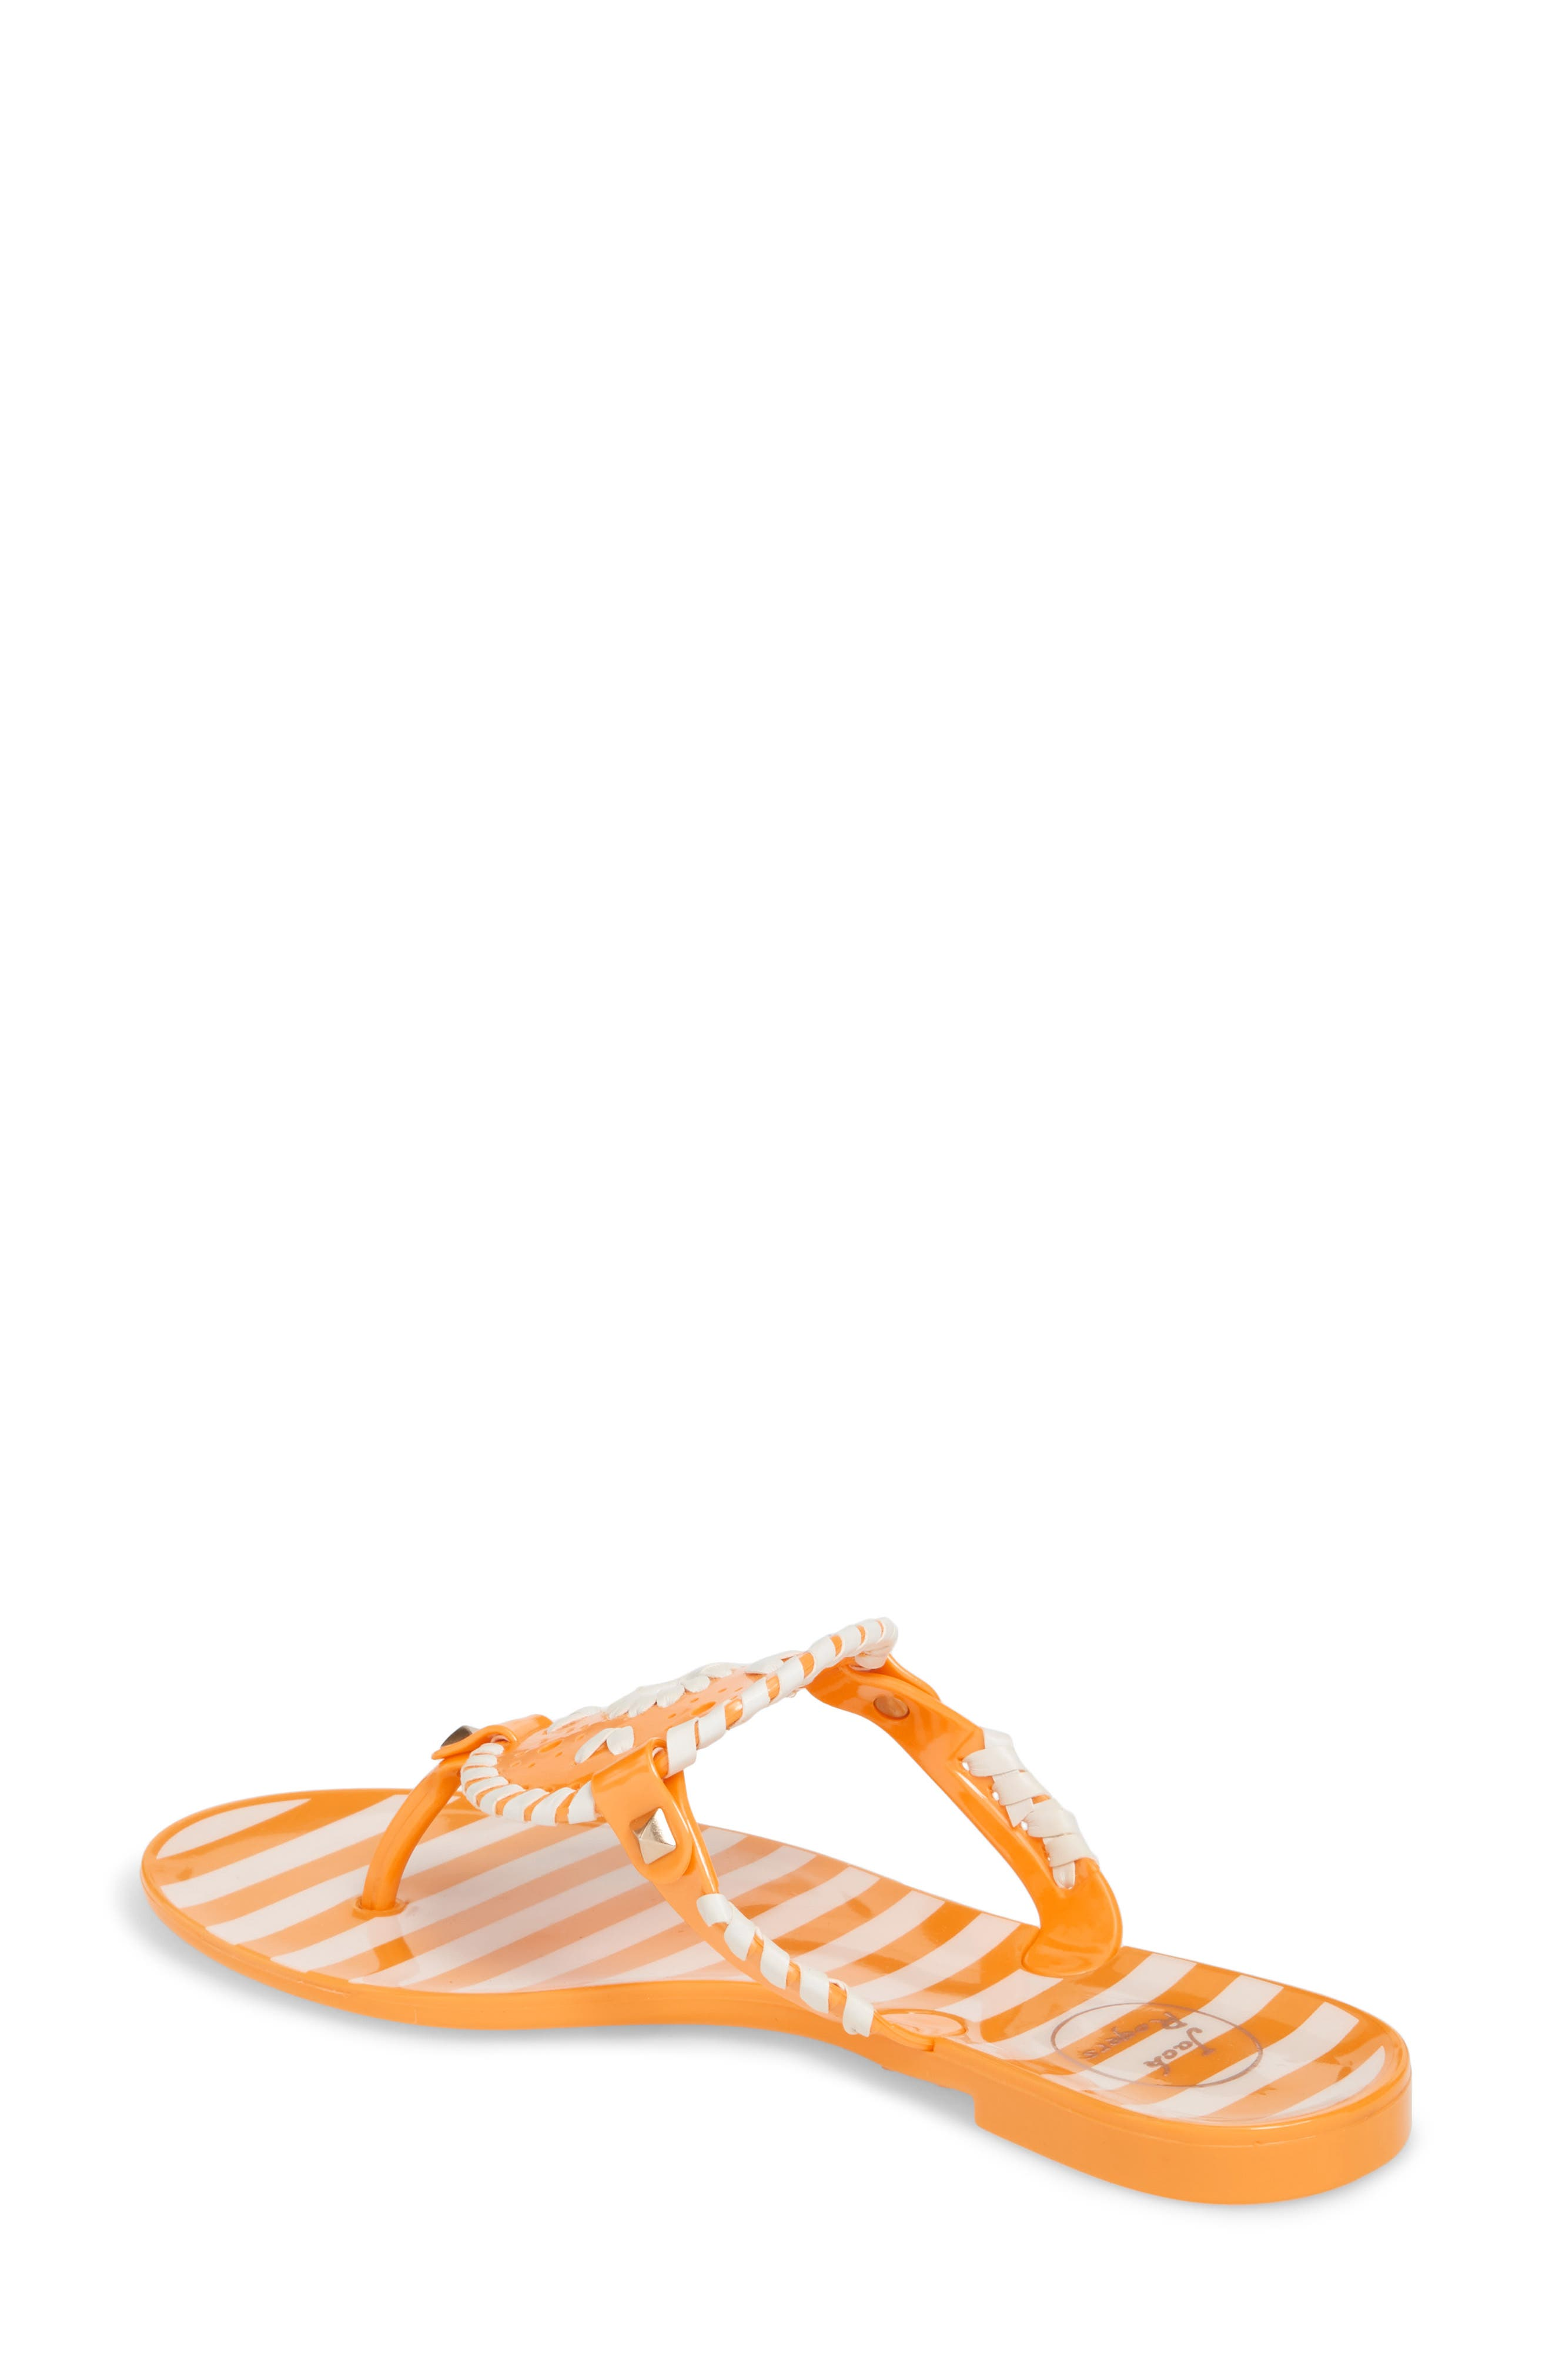 'Georgica' Jelly Flip Flop,                             Alternate thumbnail 2, color,                             Tangerine/ White Fabric